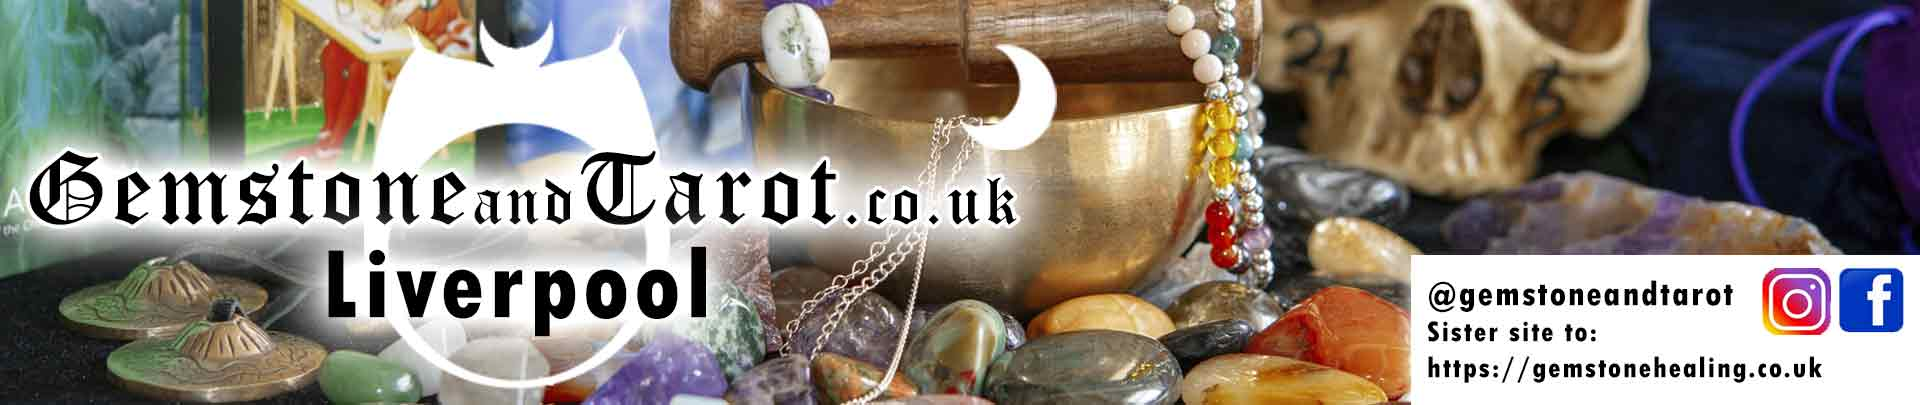 Gemstone and Tarot Shop